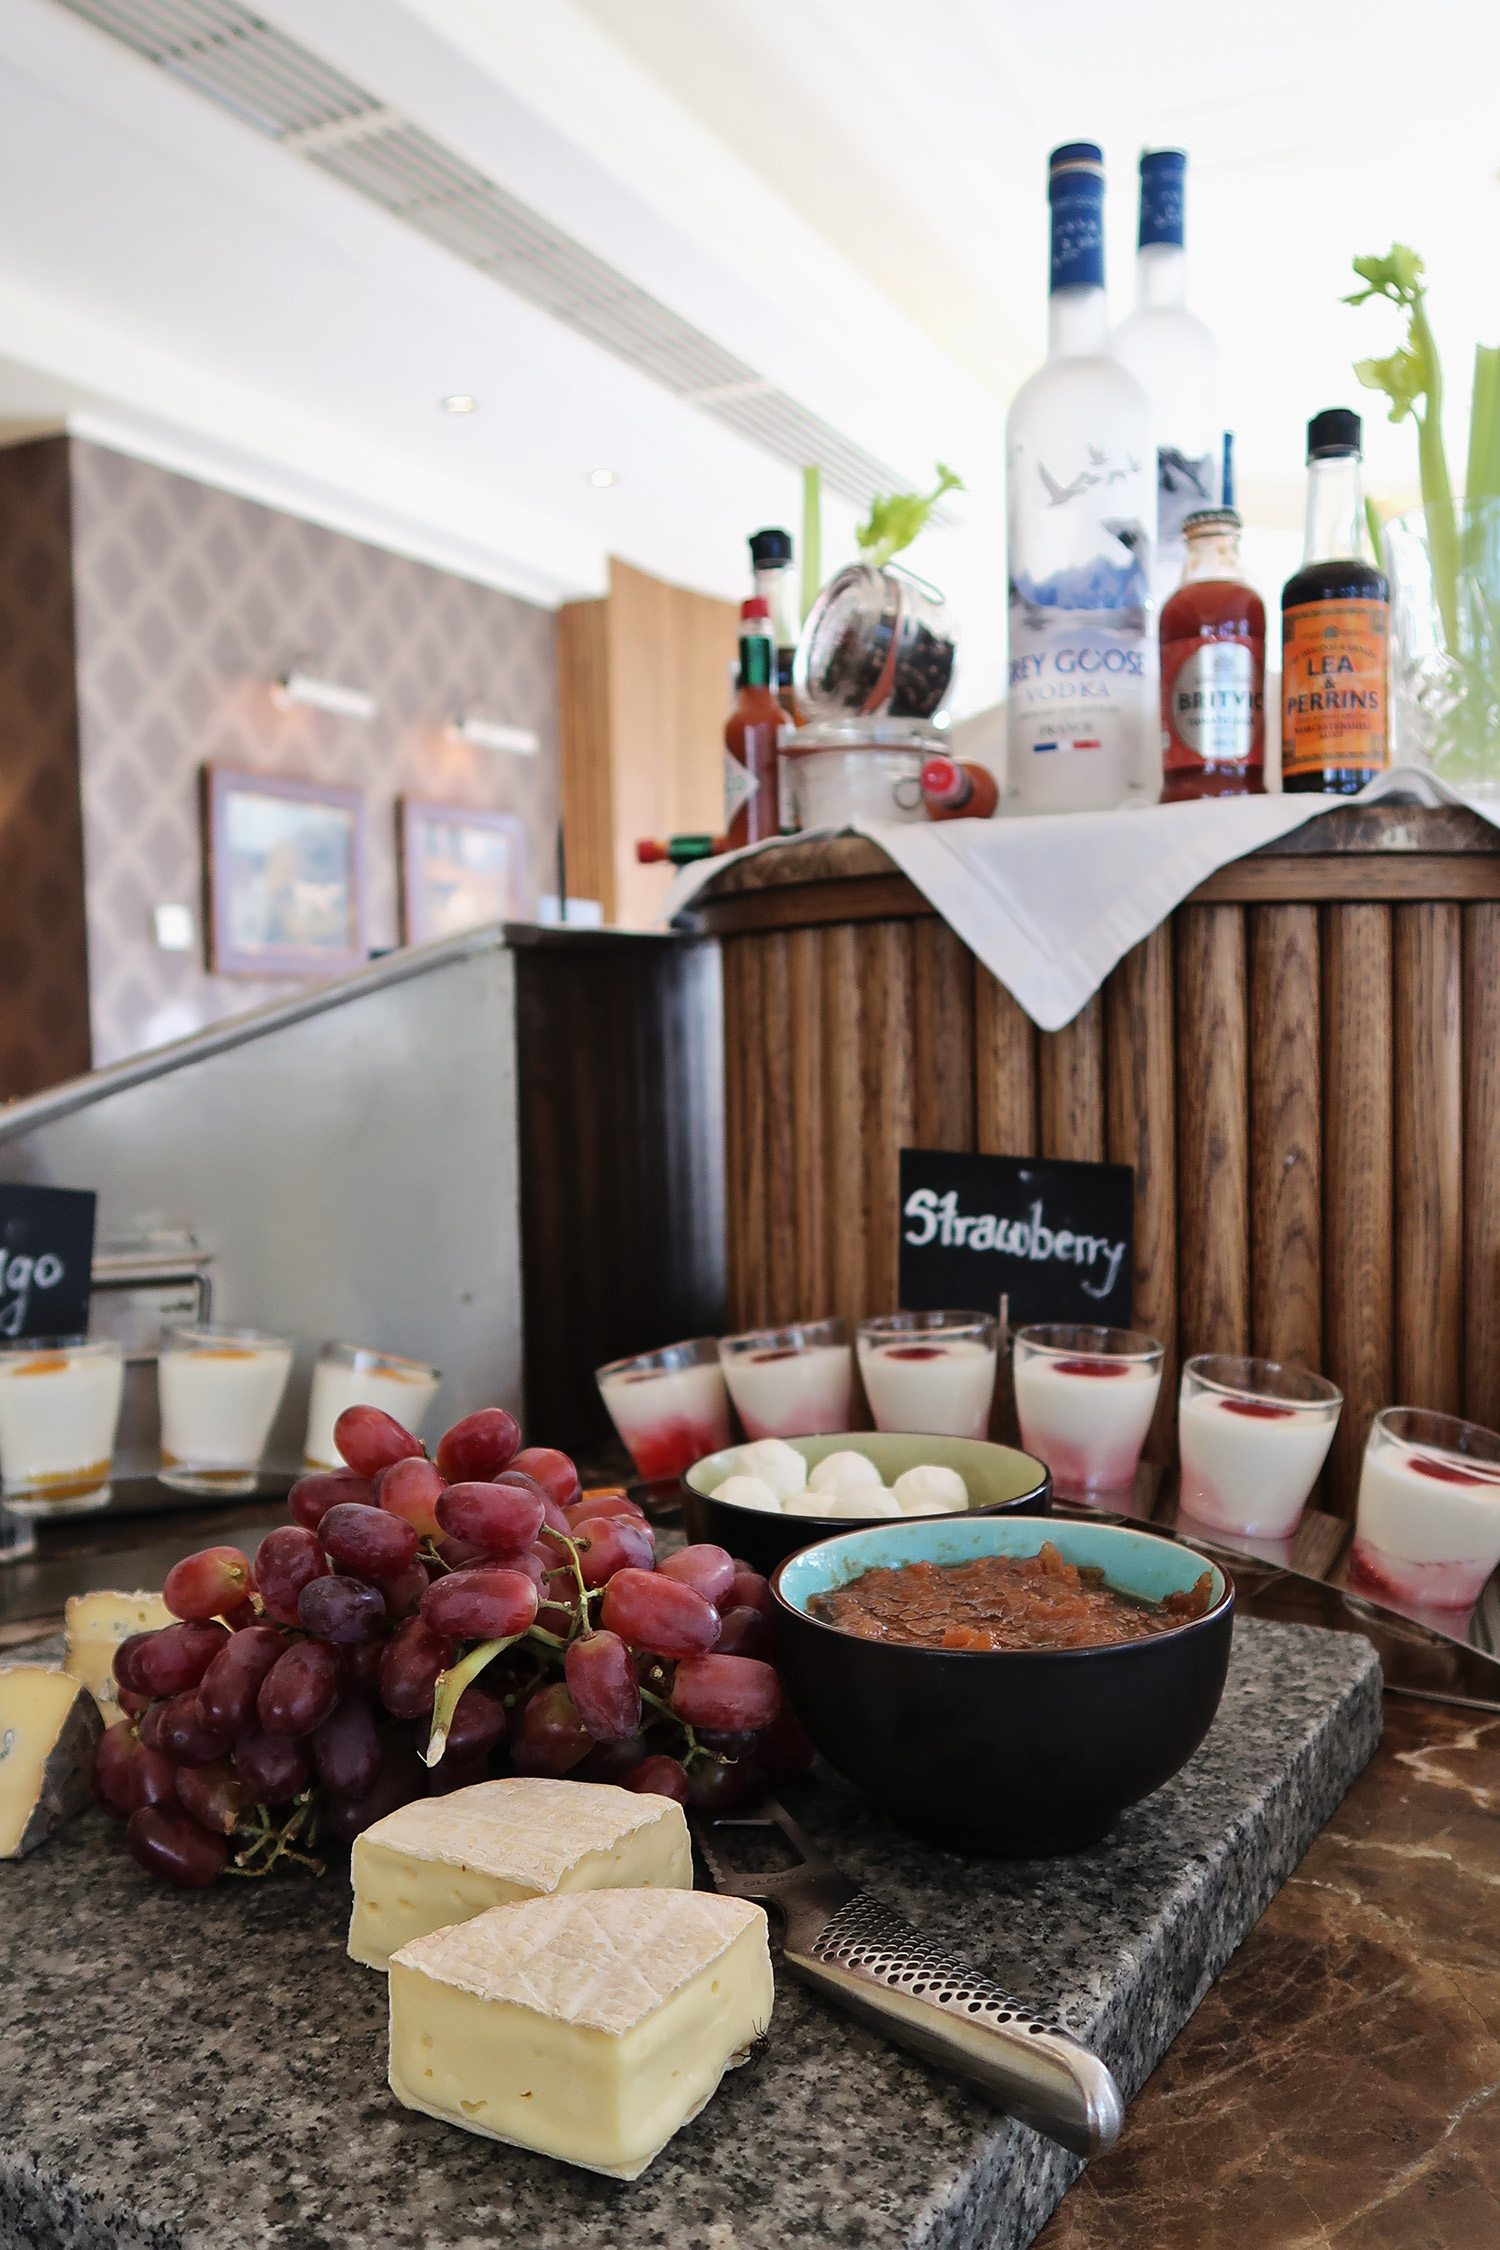 Cheese platter with grapes, pots of yoghurt and granola, and at the back the bottles of ingredients to make a bloody mary